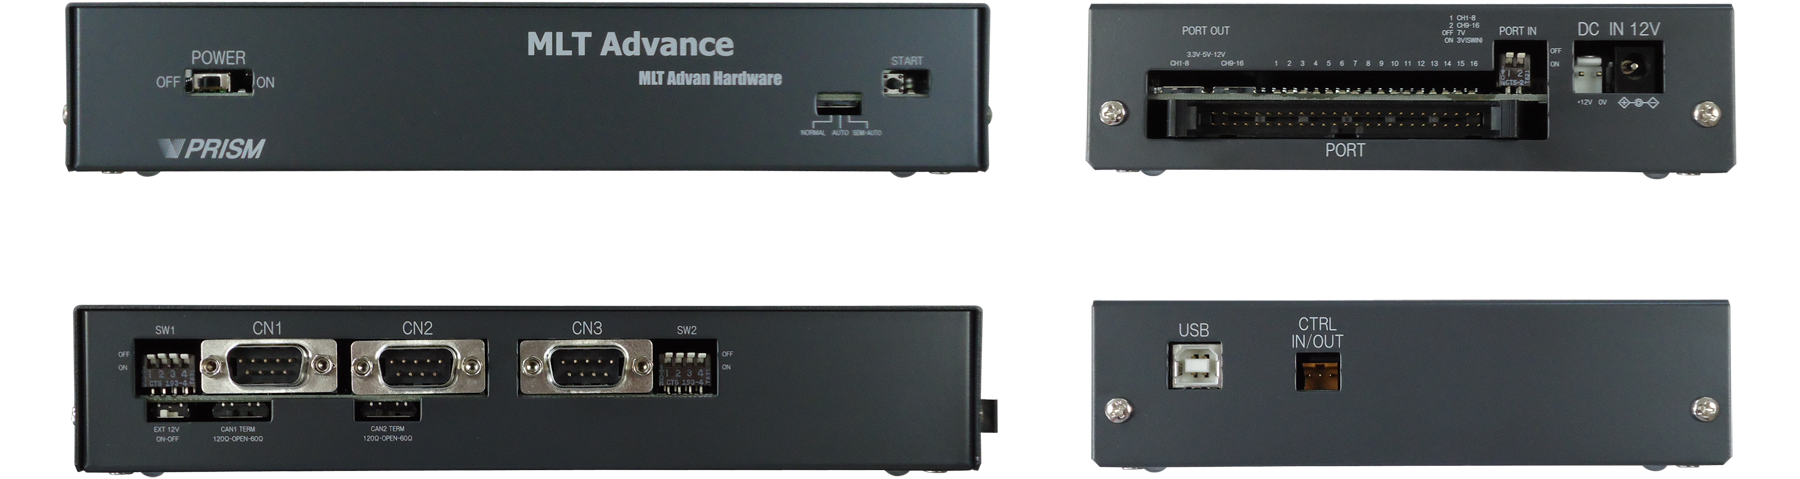 MLT Advan Hardware